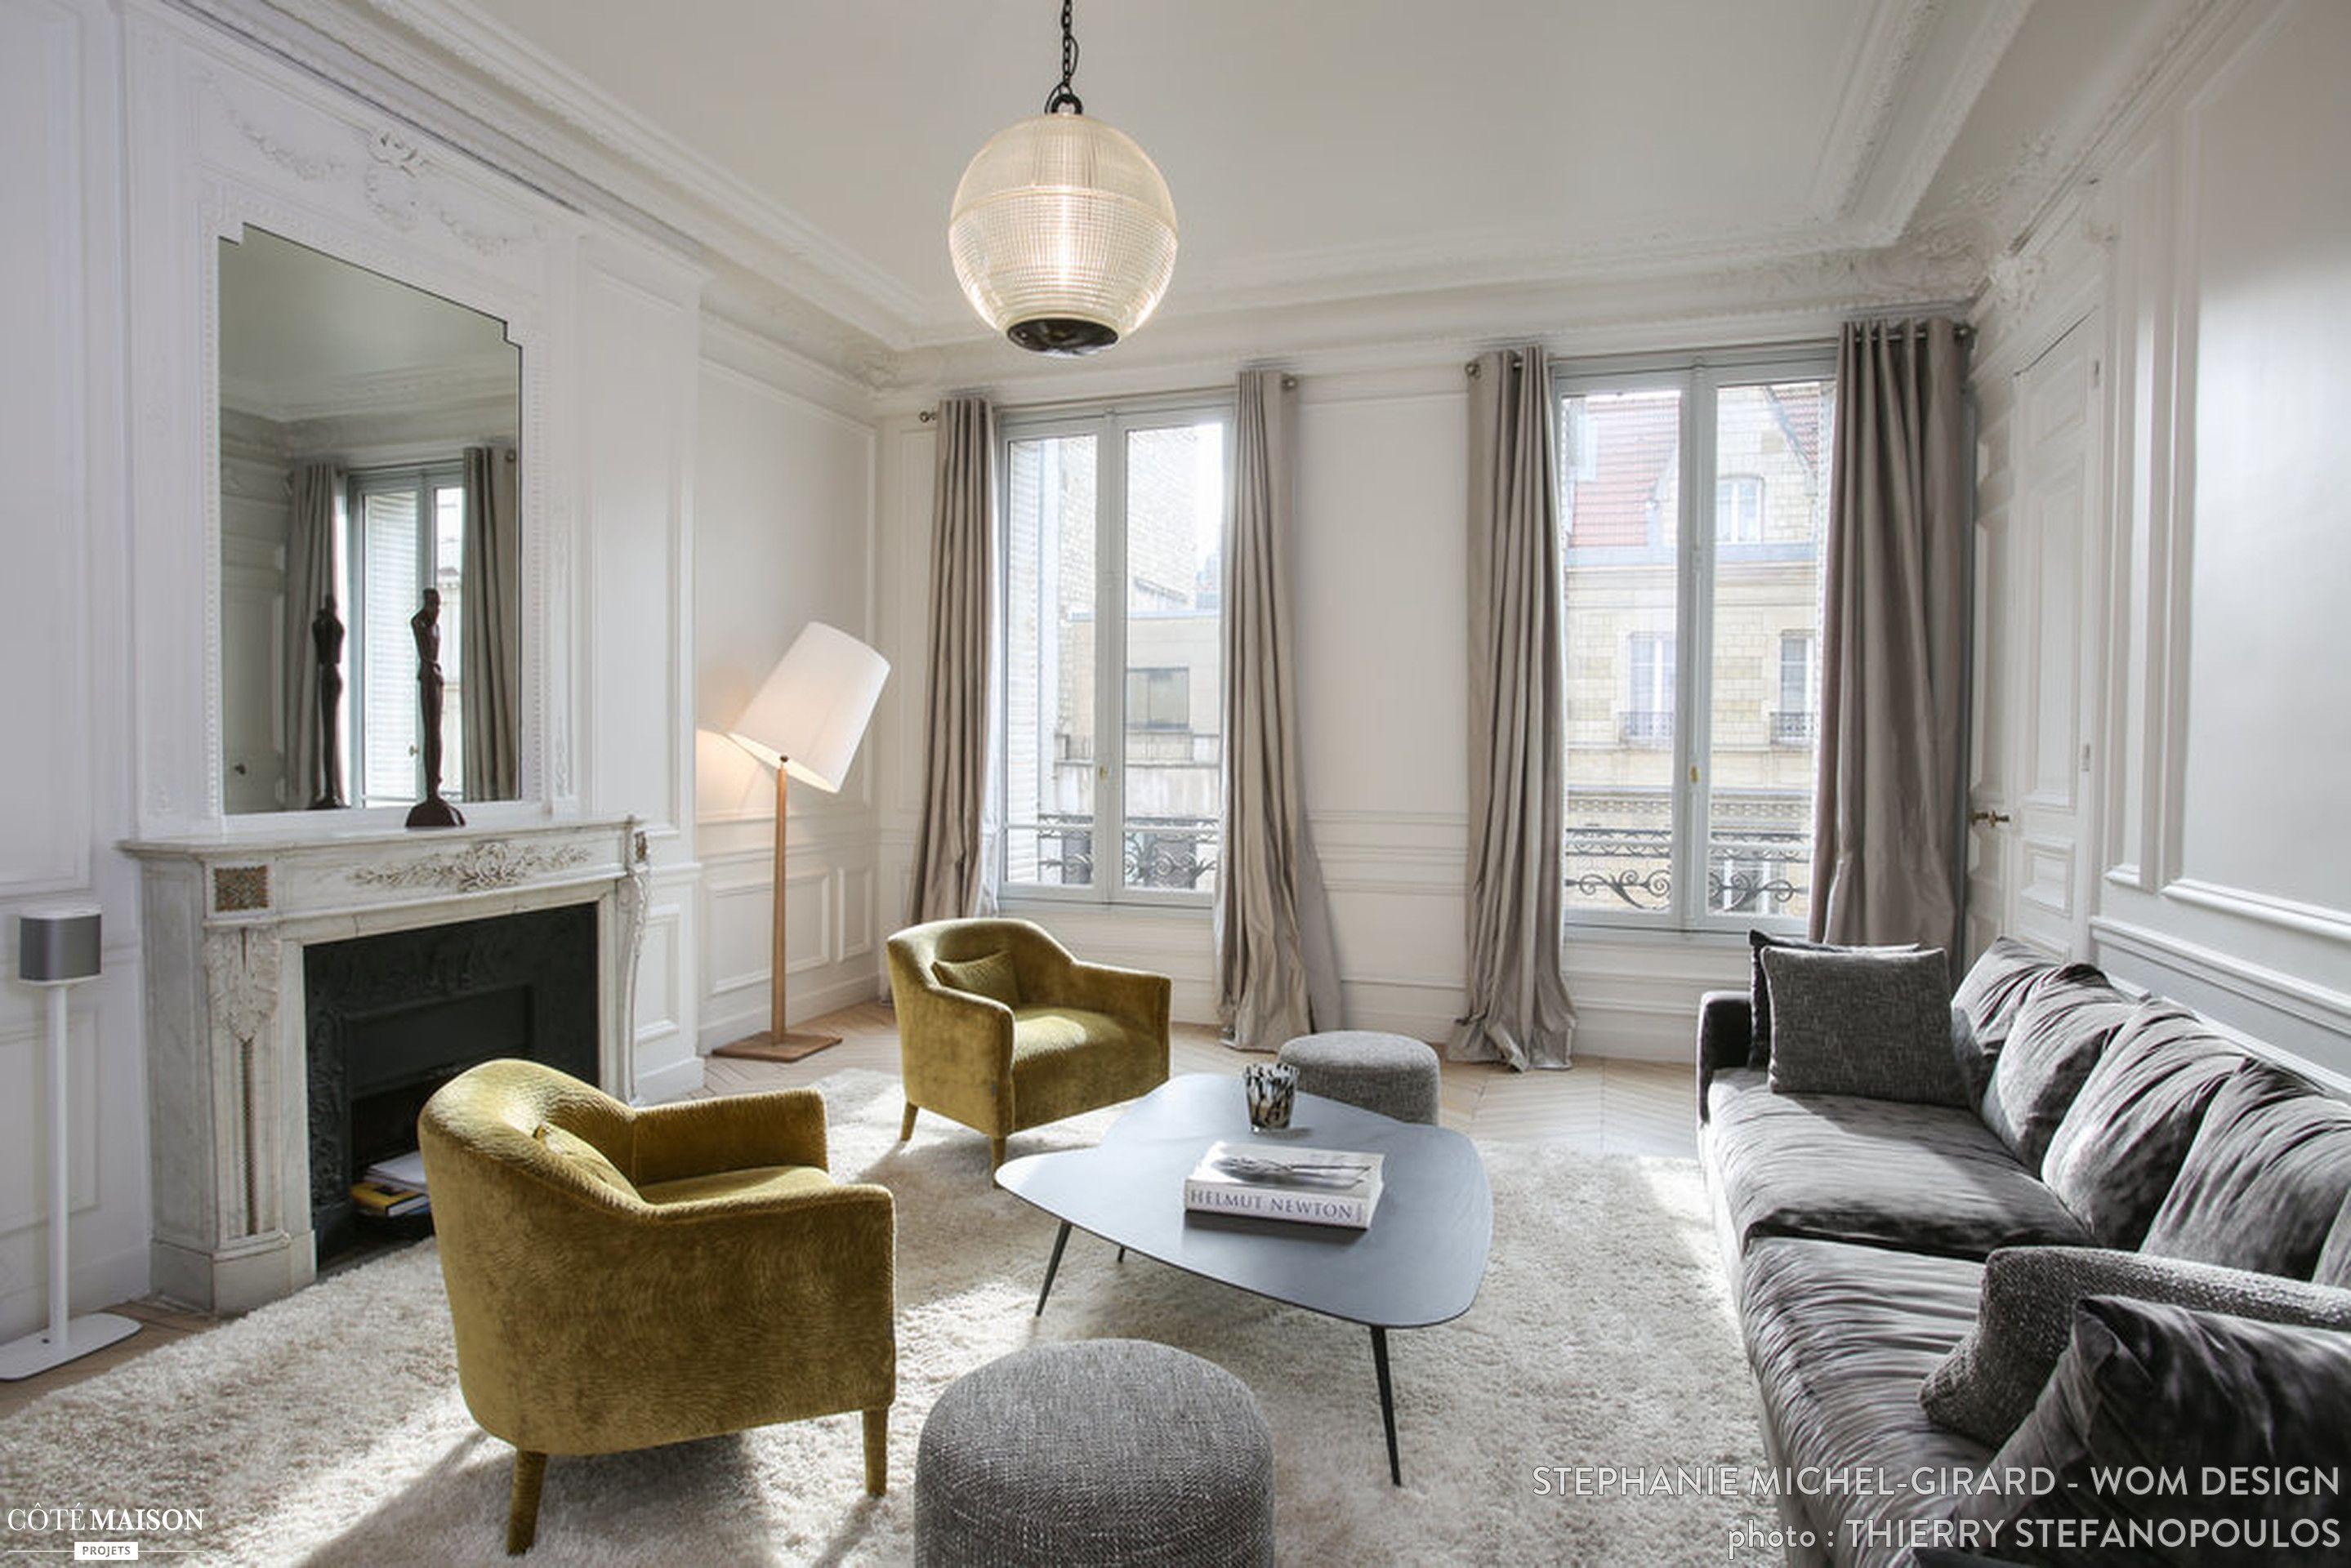 R novation et d coration d 39 un appartement haussmanien de 200 m2 salon wom design st phanie - Salon decoration interieur ...